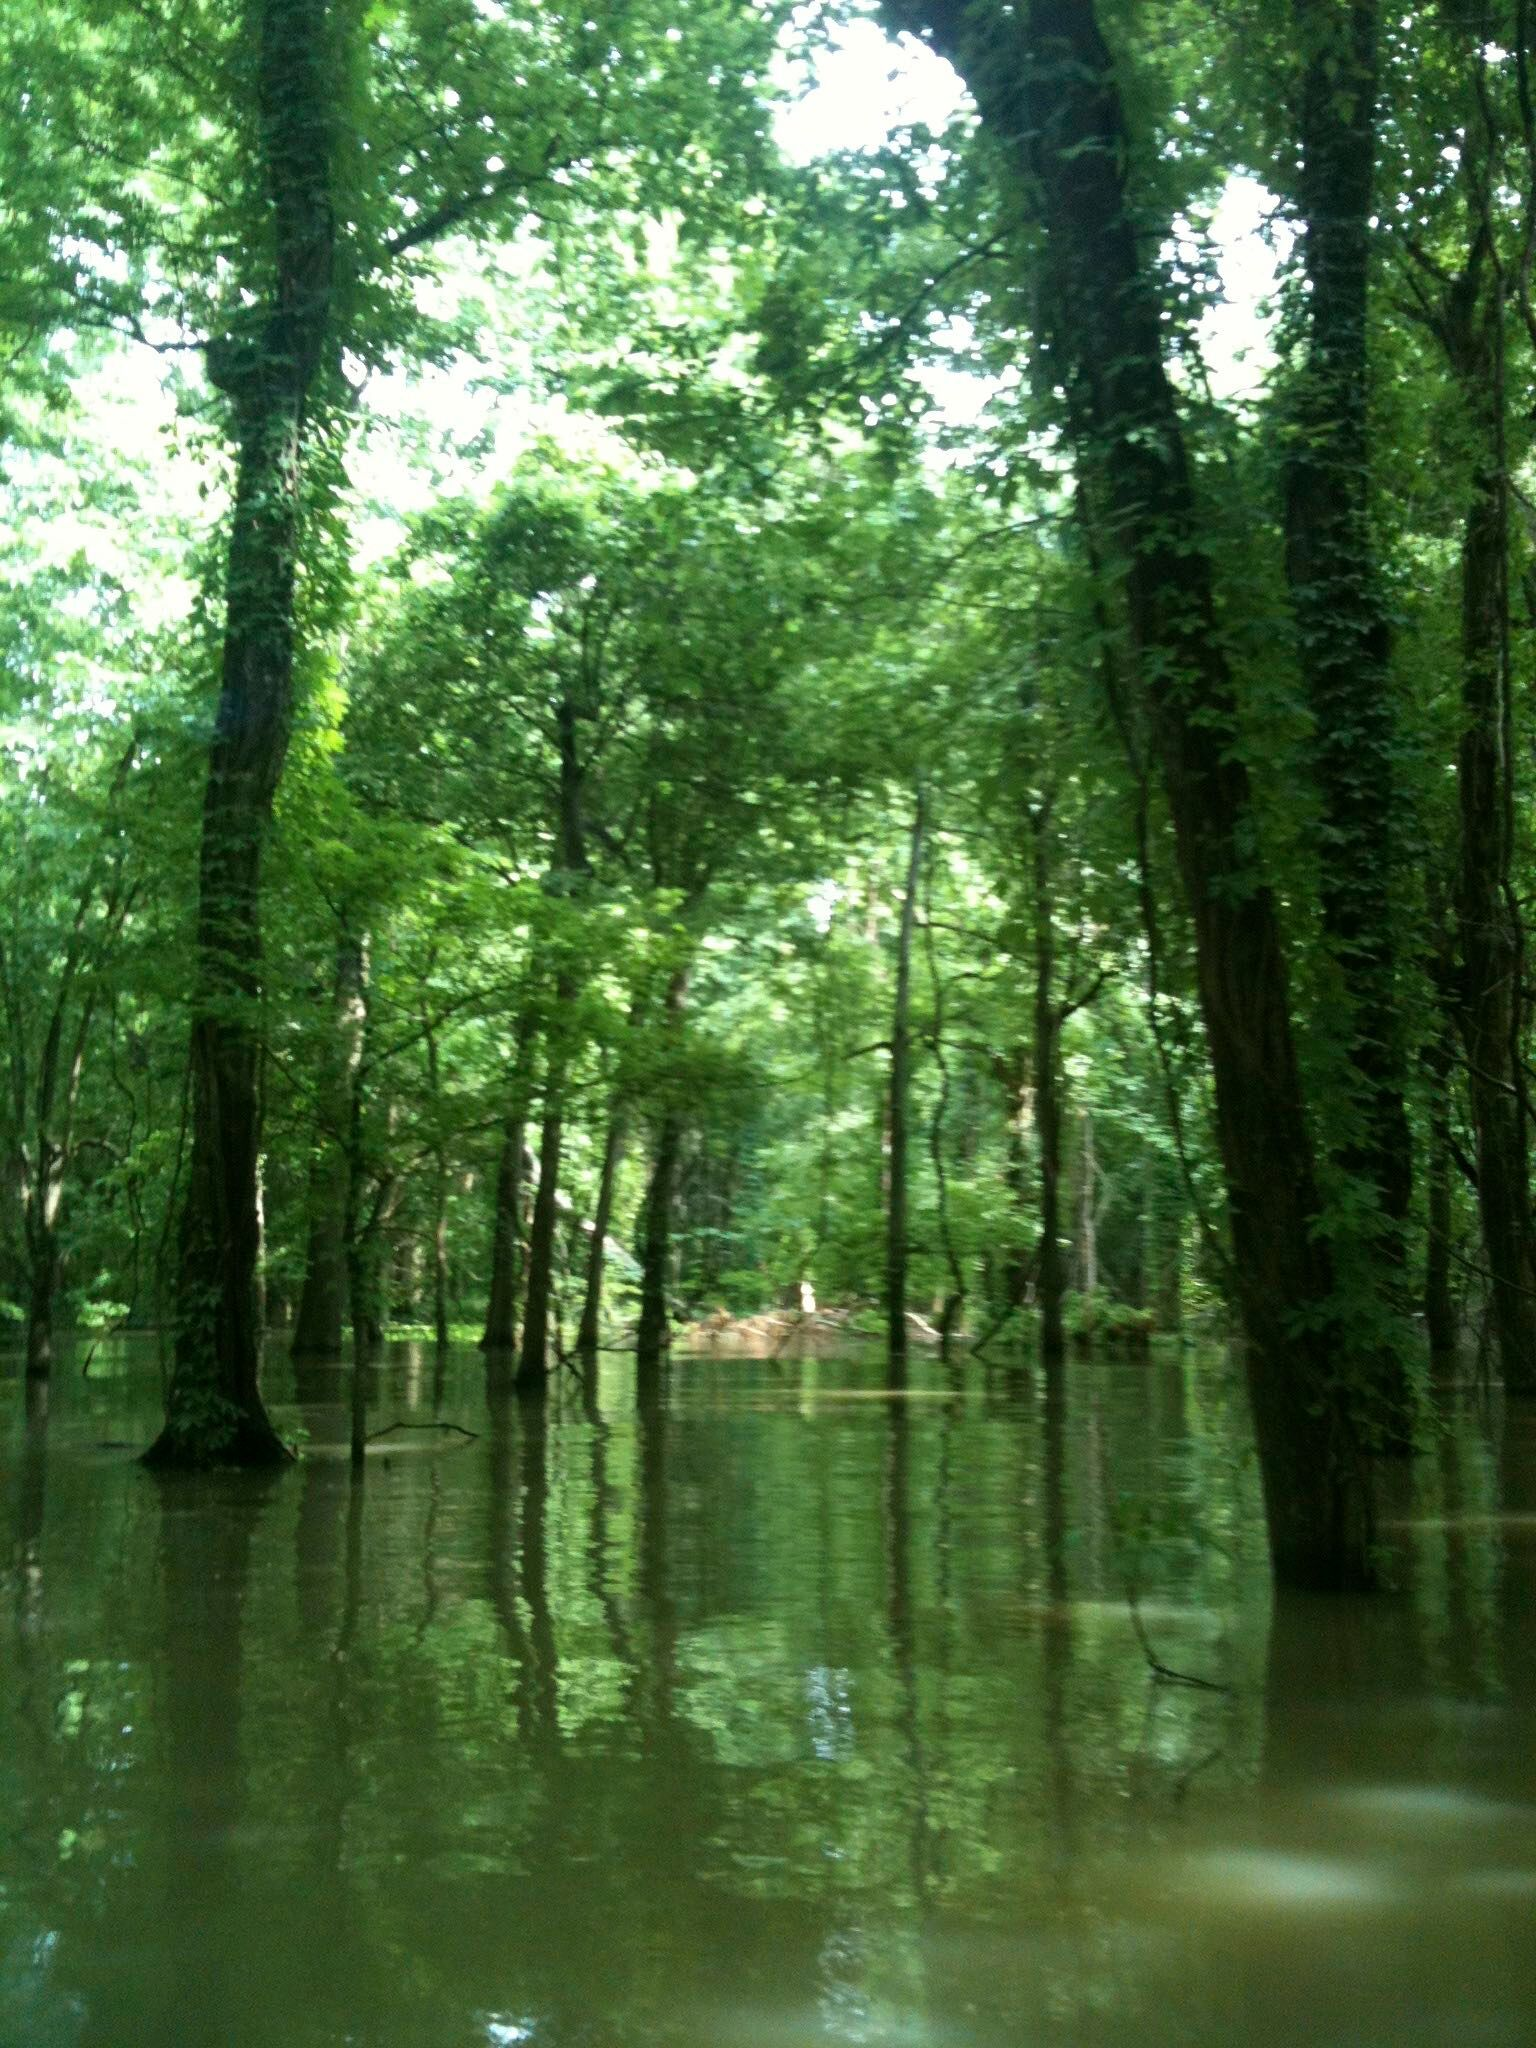 During high water season, water floods the trees and you enter what seems like a secret, underwater forest. You canoe around the trees. Yes, it's as magical as it sounds.